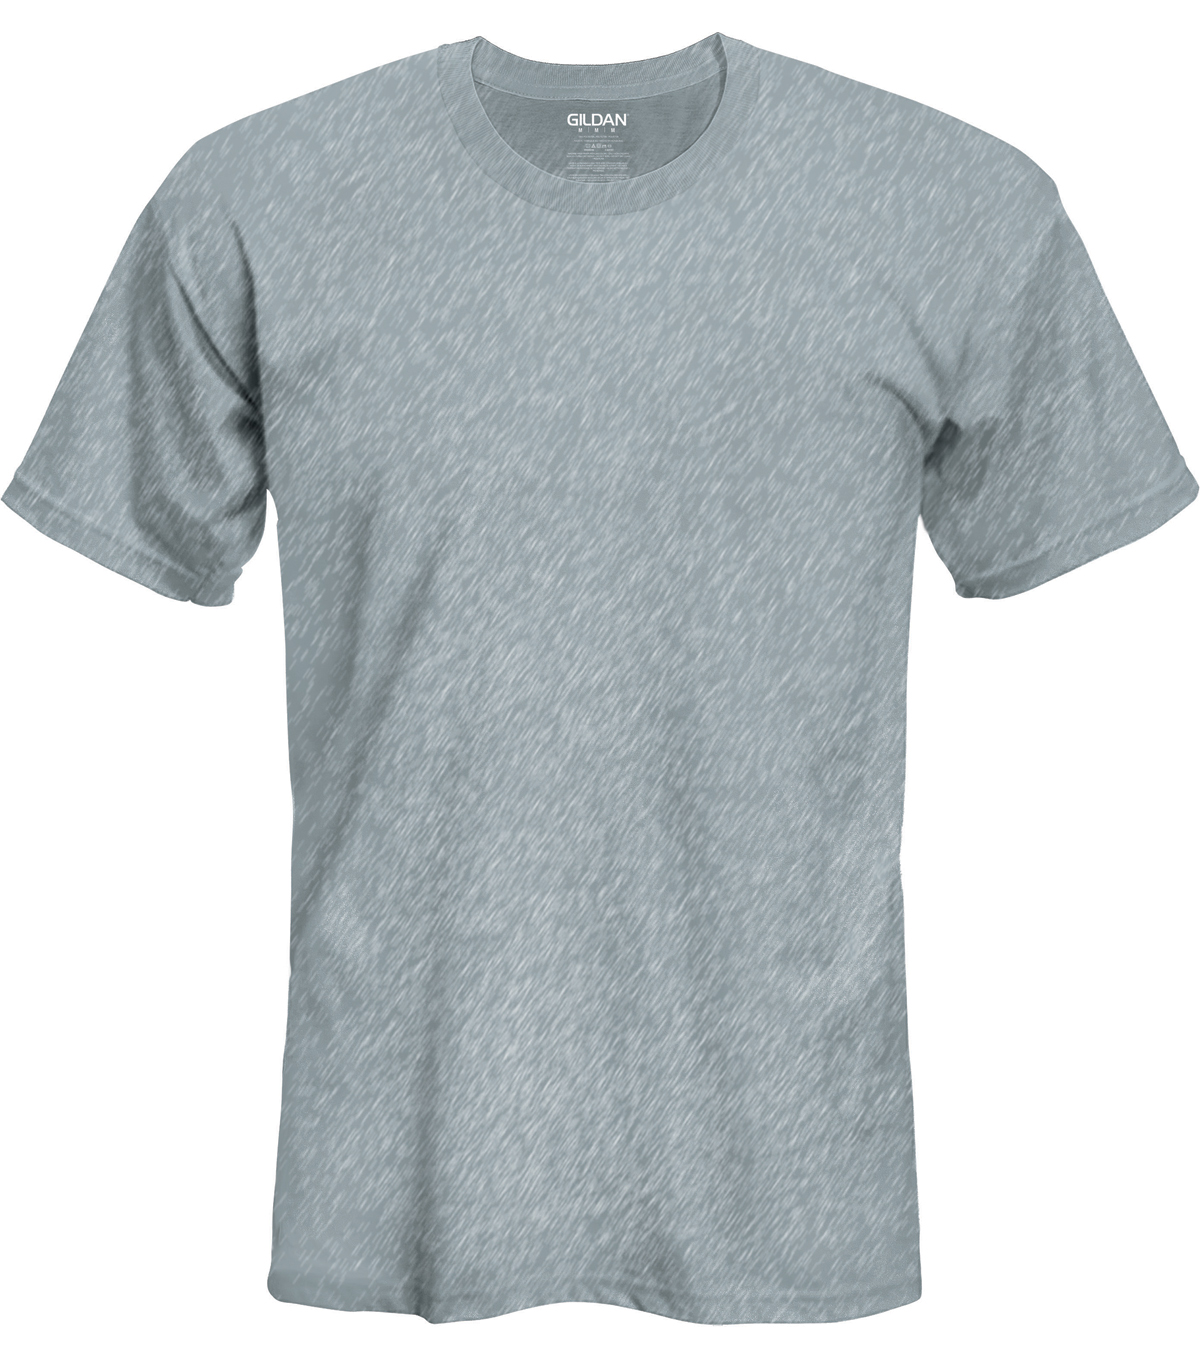 6848499a Gildan Adult T-shirt 2XL, Sport Grey